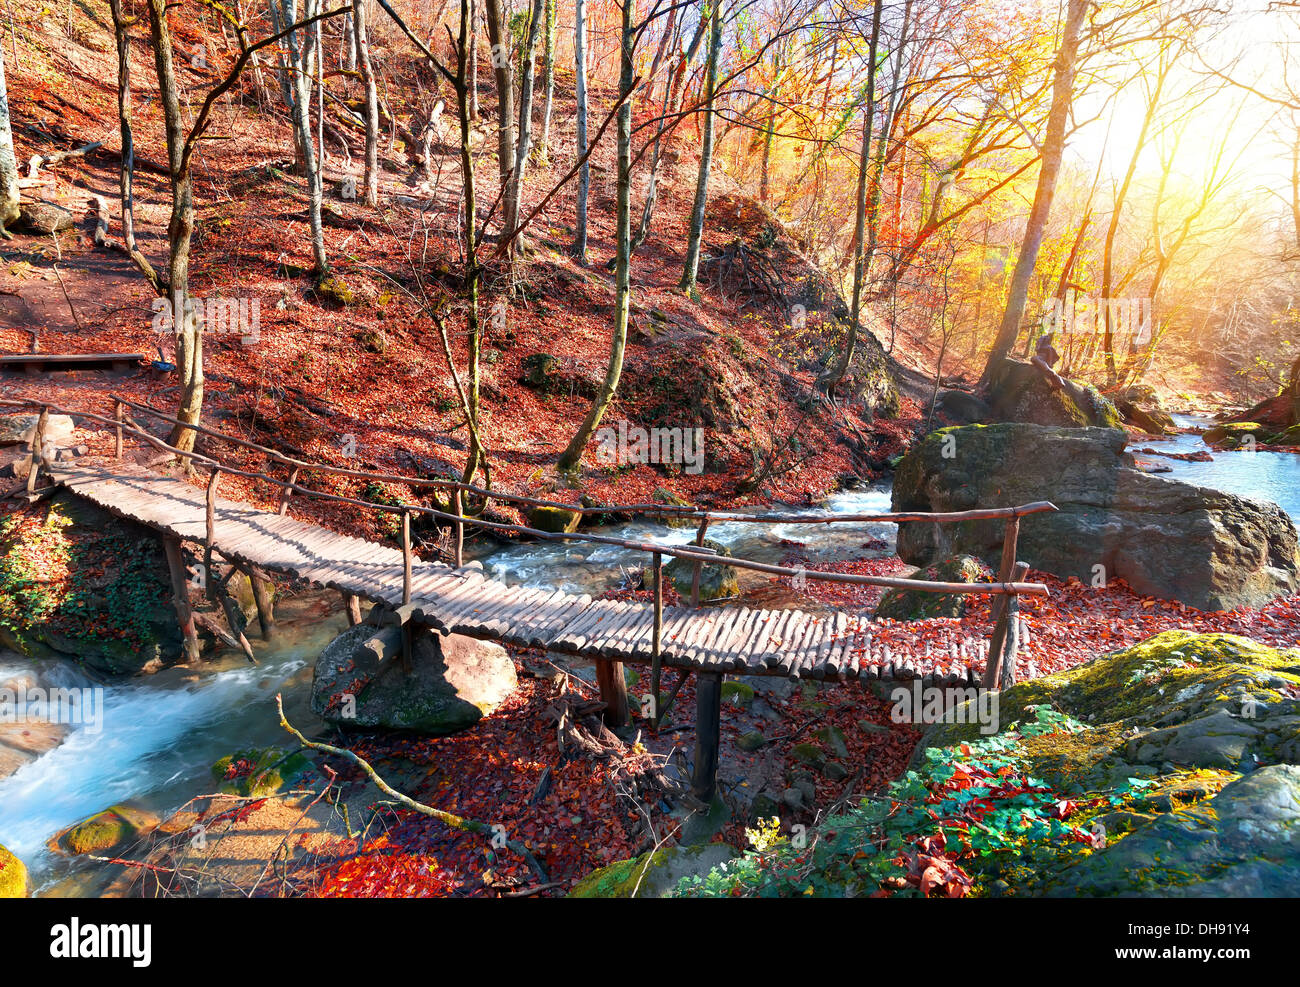 Wooden bridge in the mountain forest in autumn - Stock Image